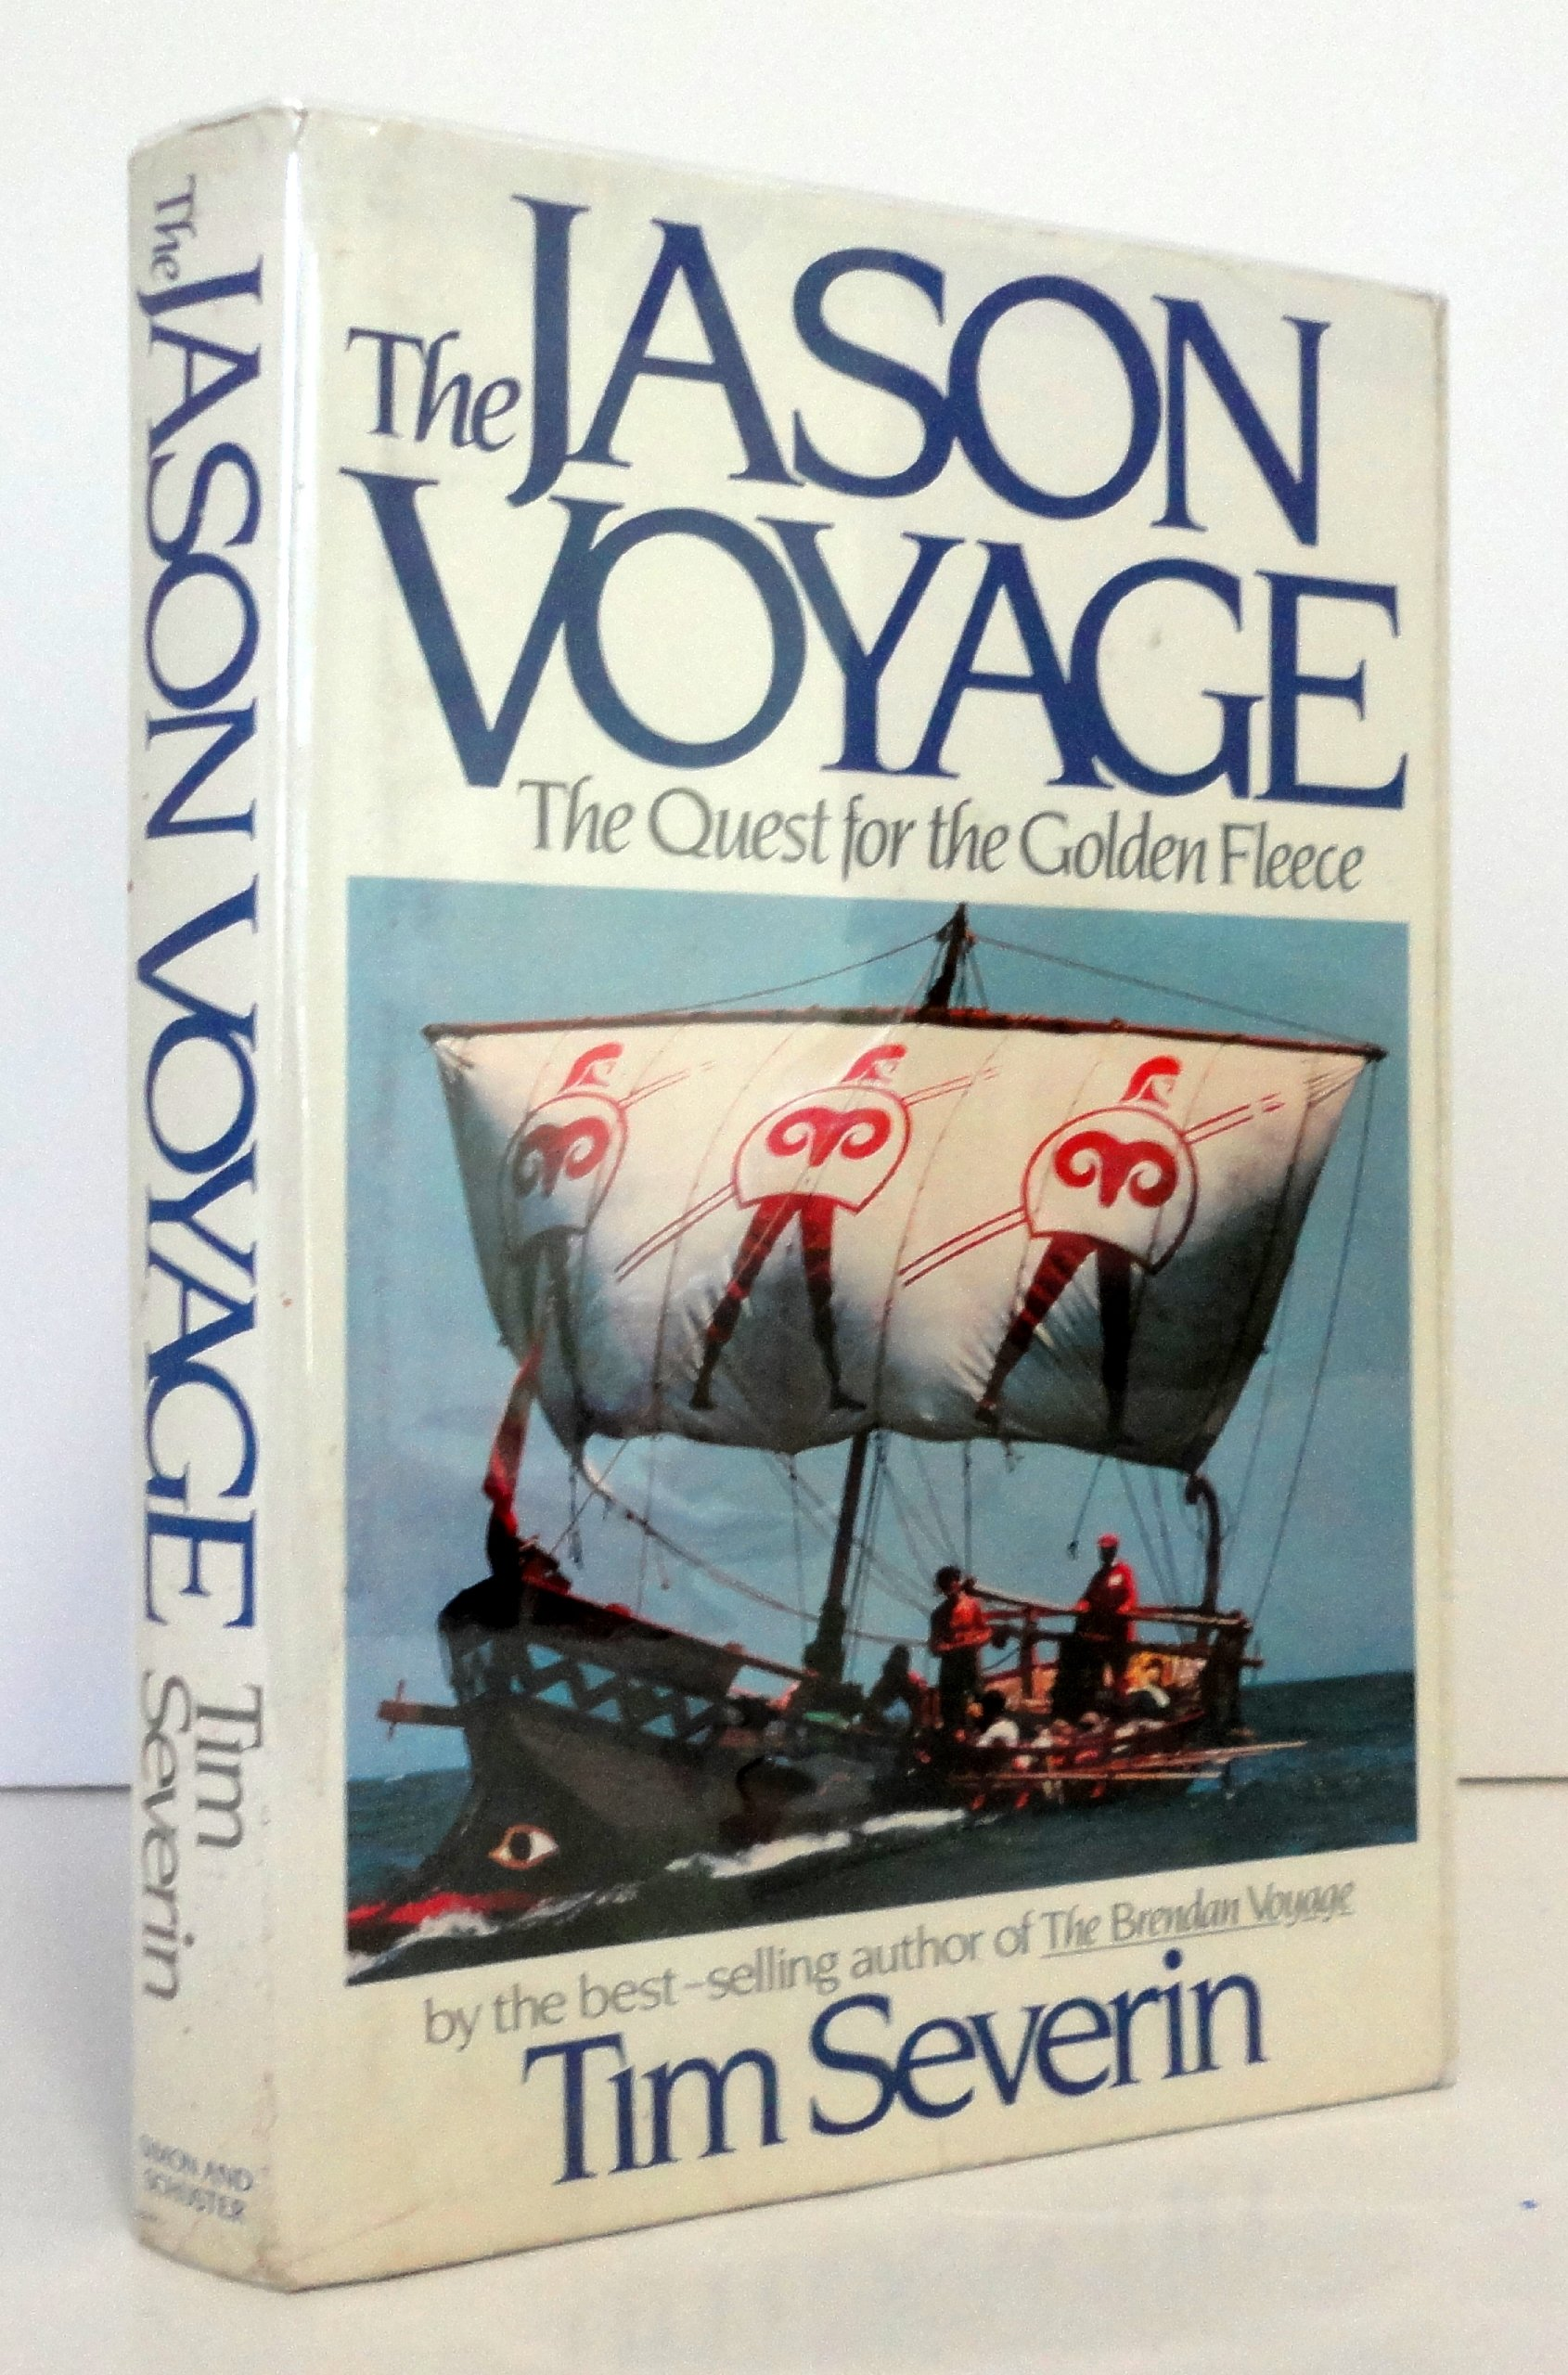 The jason voyage the quest for the golden fleece timothy severin the jason voyage the quest for the golden fleece timothy severin 9780671498139 amazon books fandeluxe Images